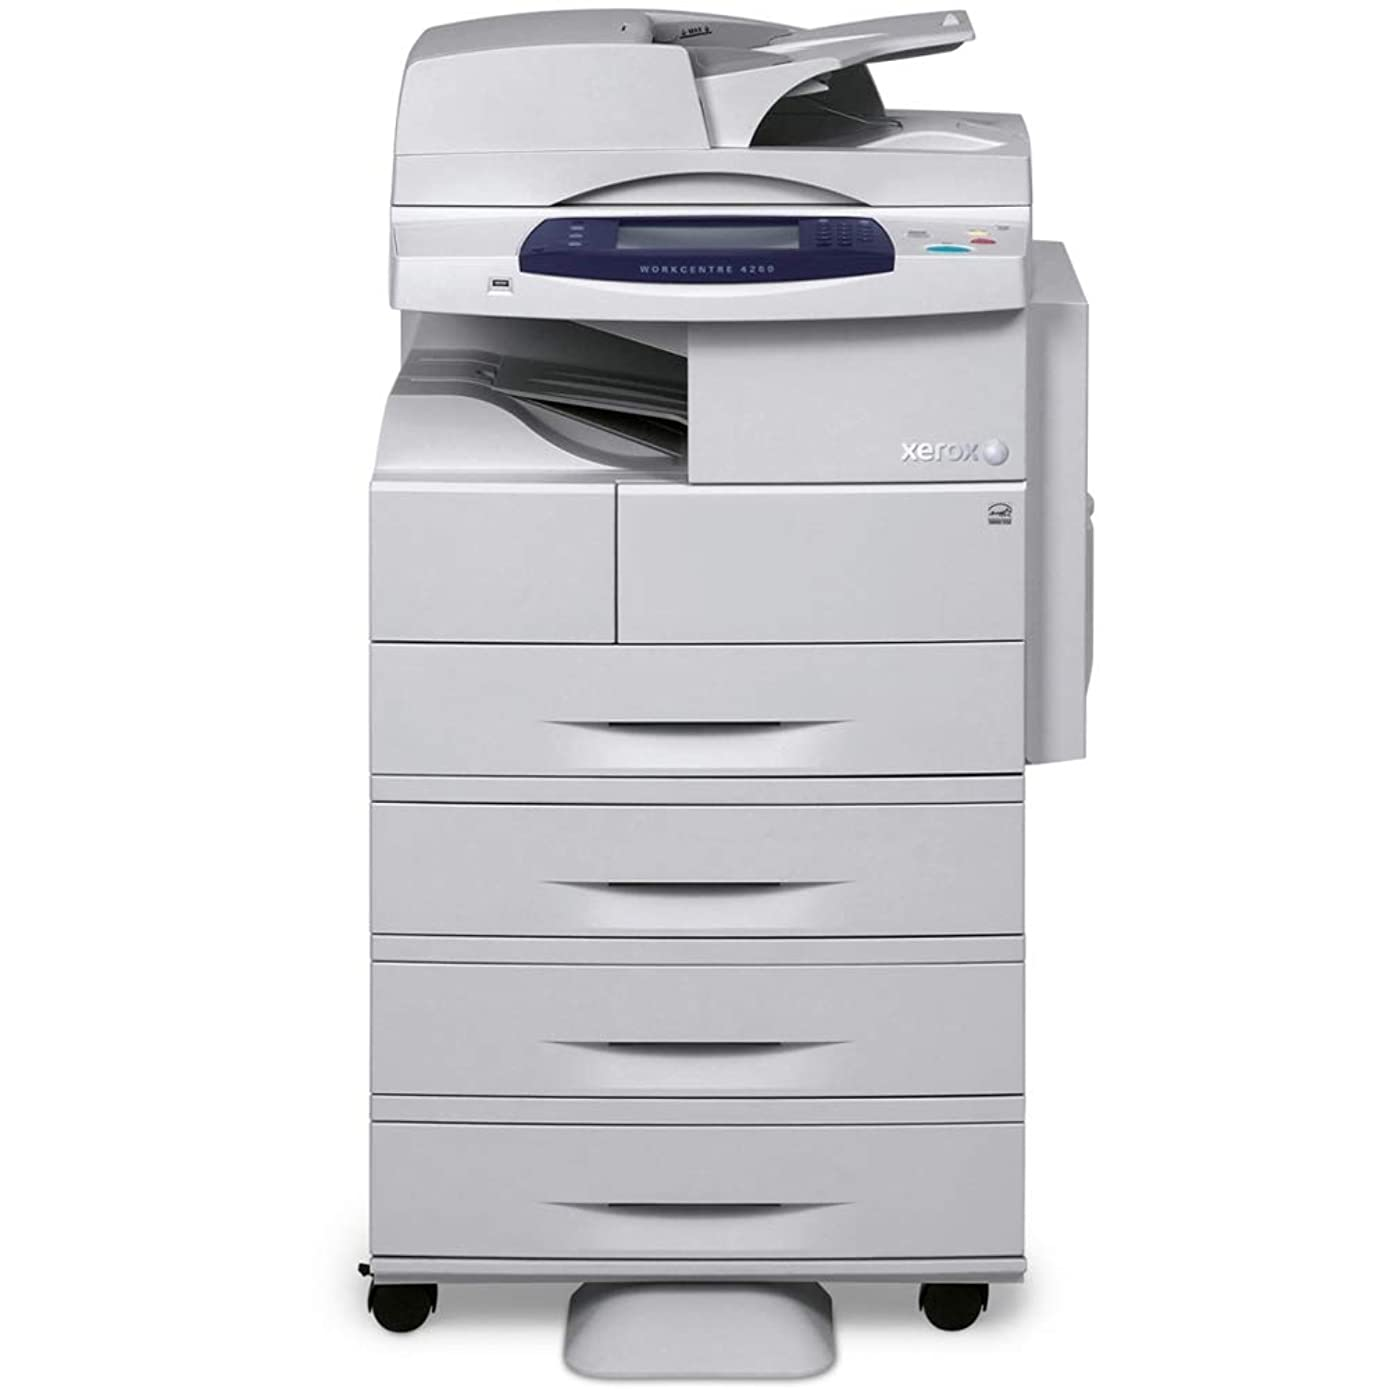 Used Xerox WorkCentre 4260XF Mono Laser MFP Printer Copier Scanner with Finisher 55 PPM